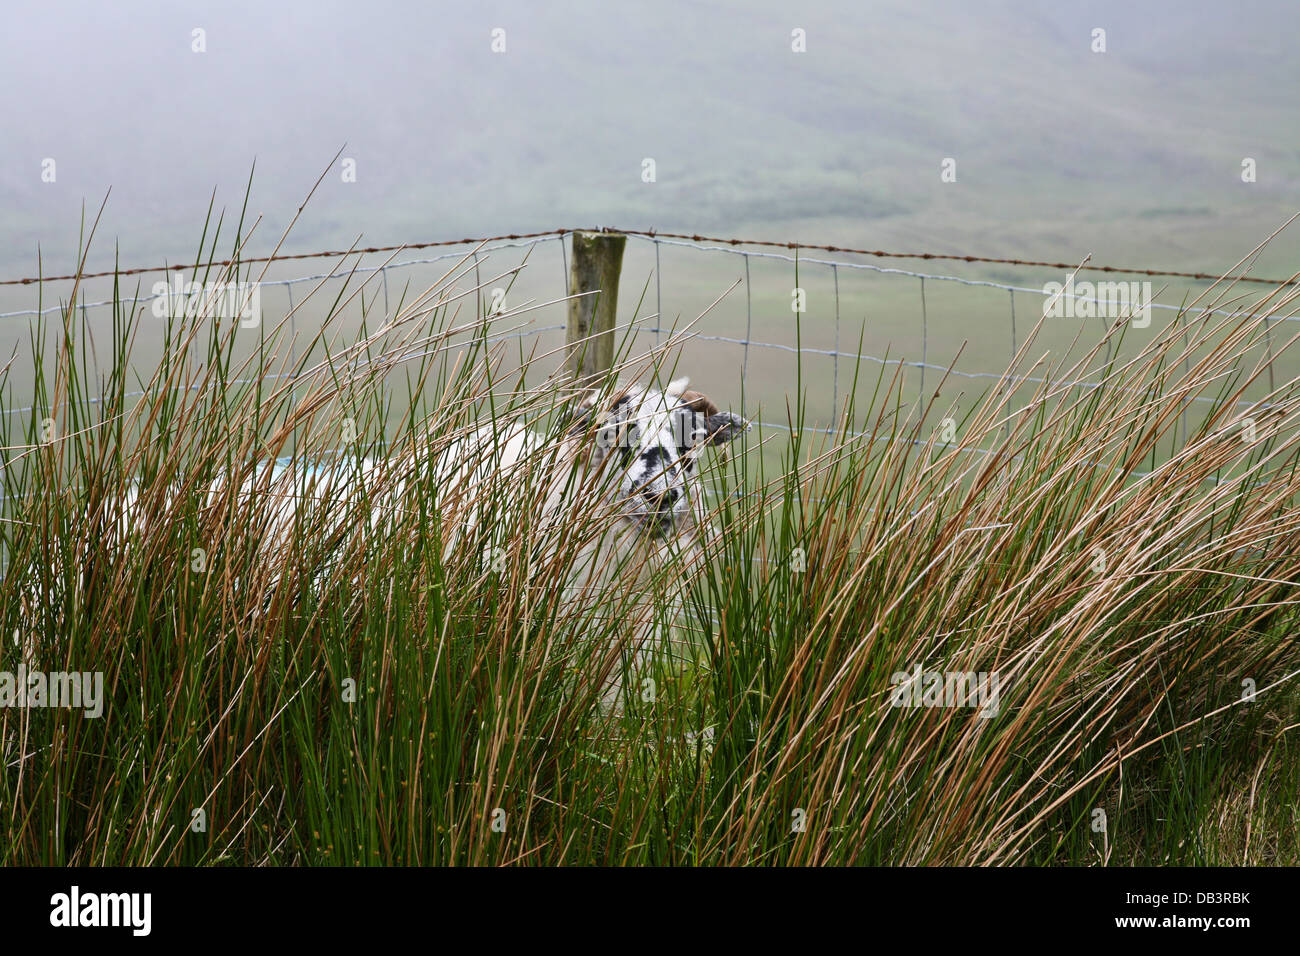 Close up of one sheep in fog hidden in tall grass, earth, County Kerry,  Ireland, Europe, Eu farming - Stock Image